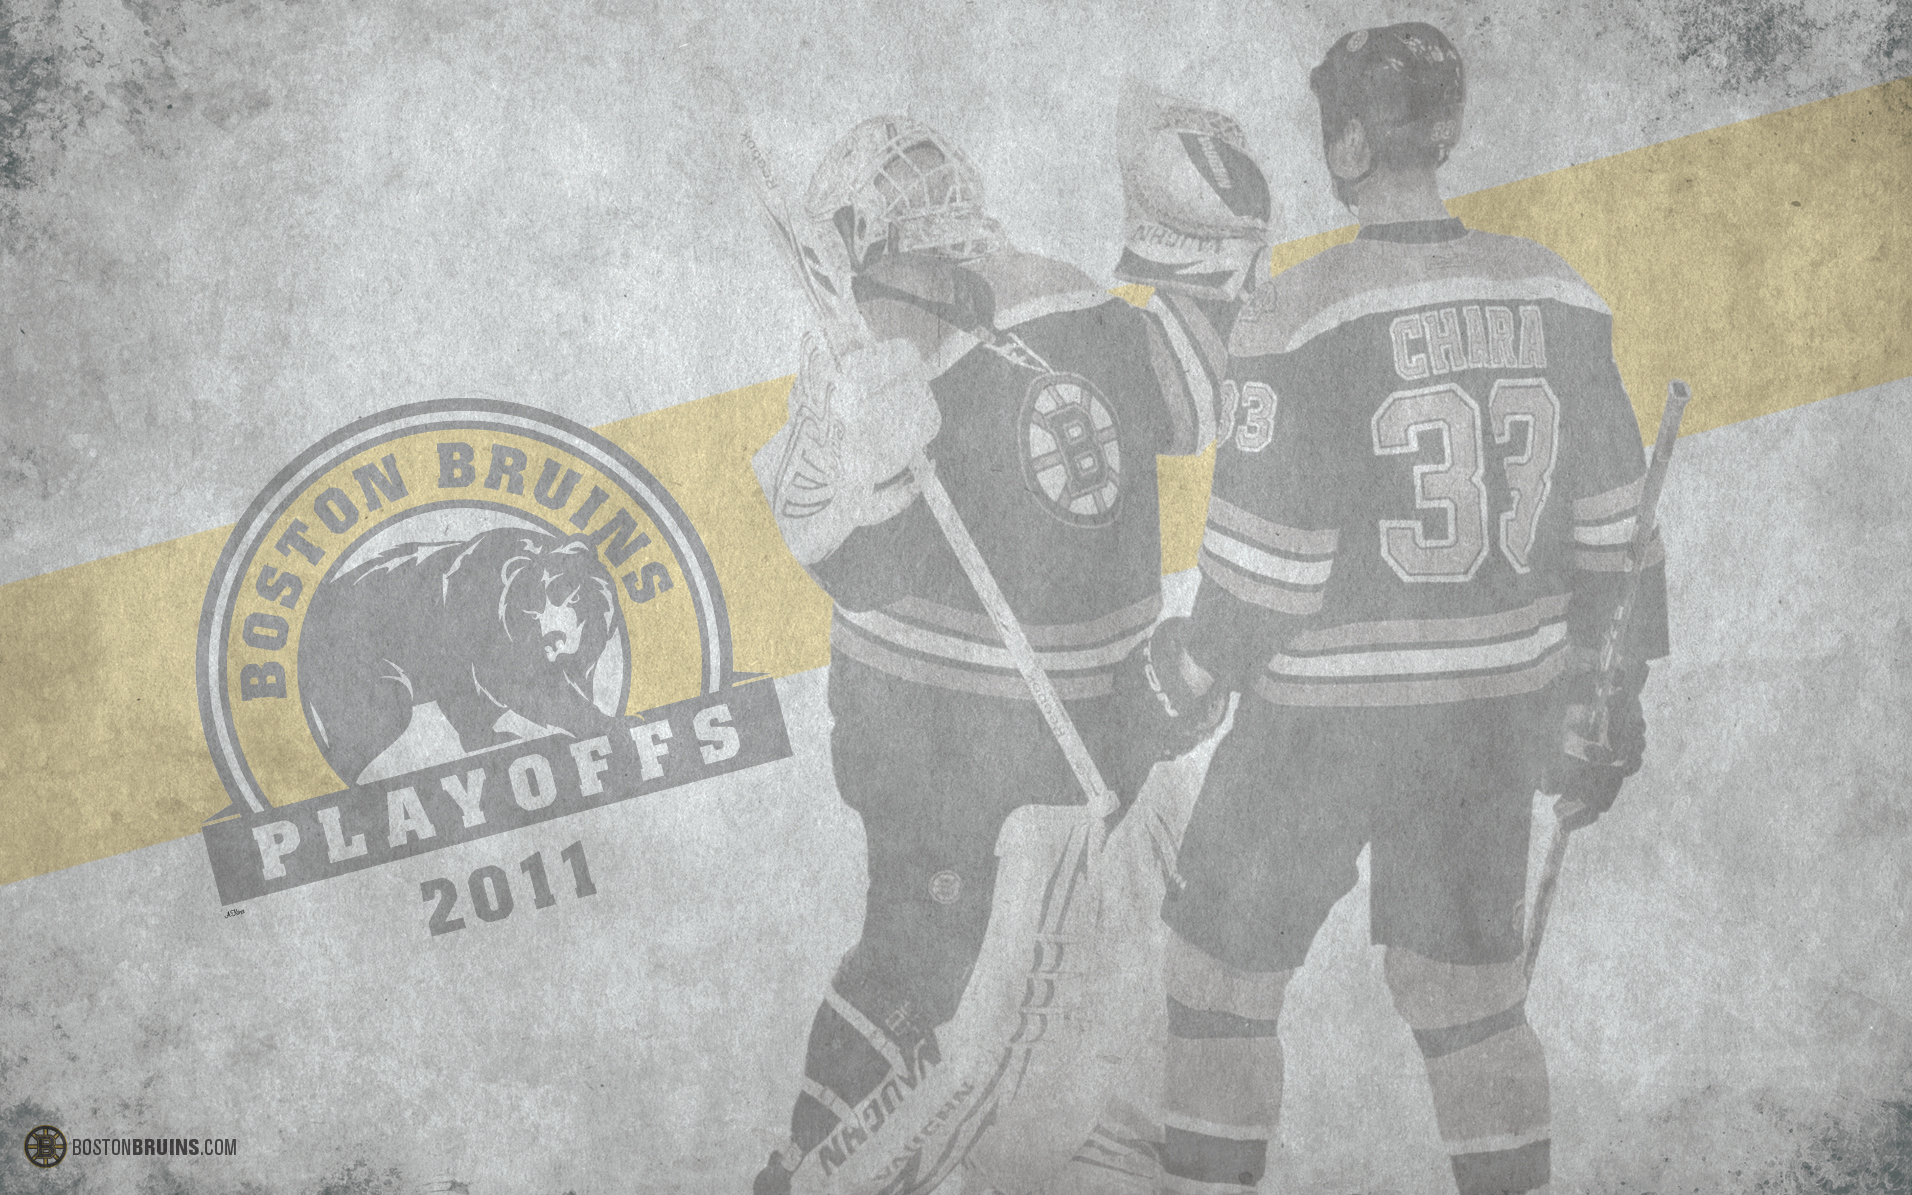 Boston Bruins images Boston Bruins 2011 Playoffs HD wallpaper and